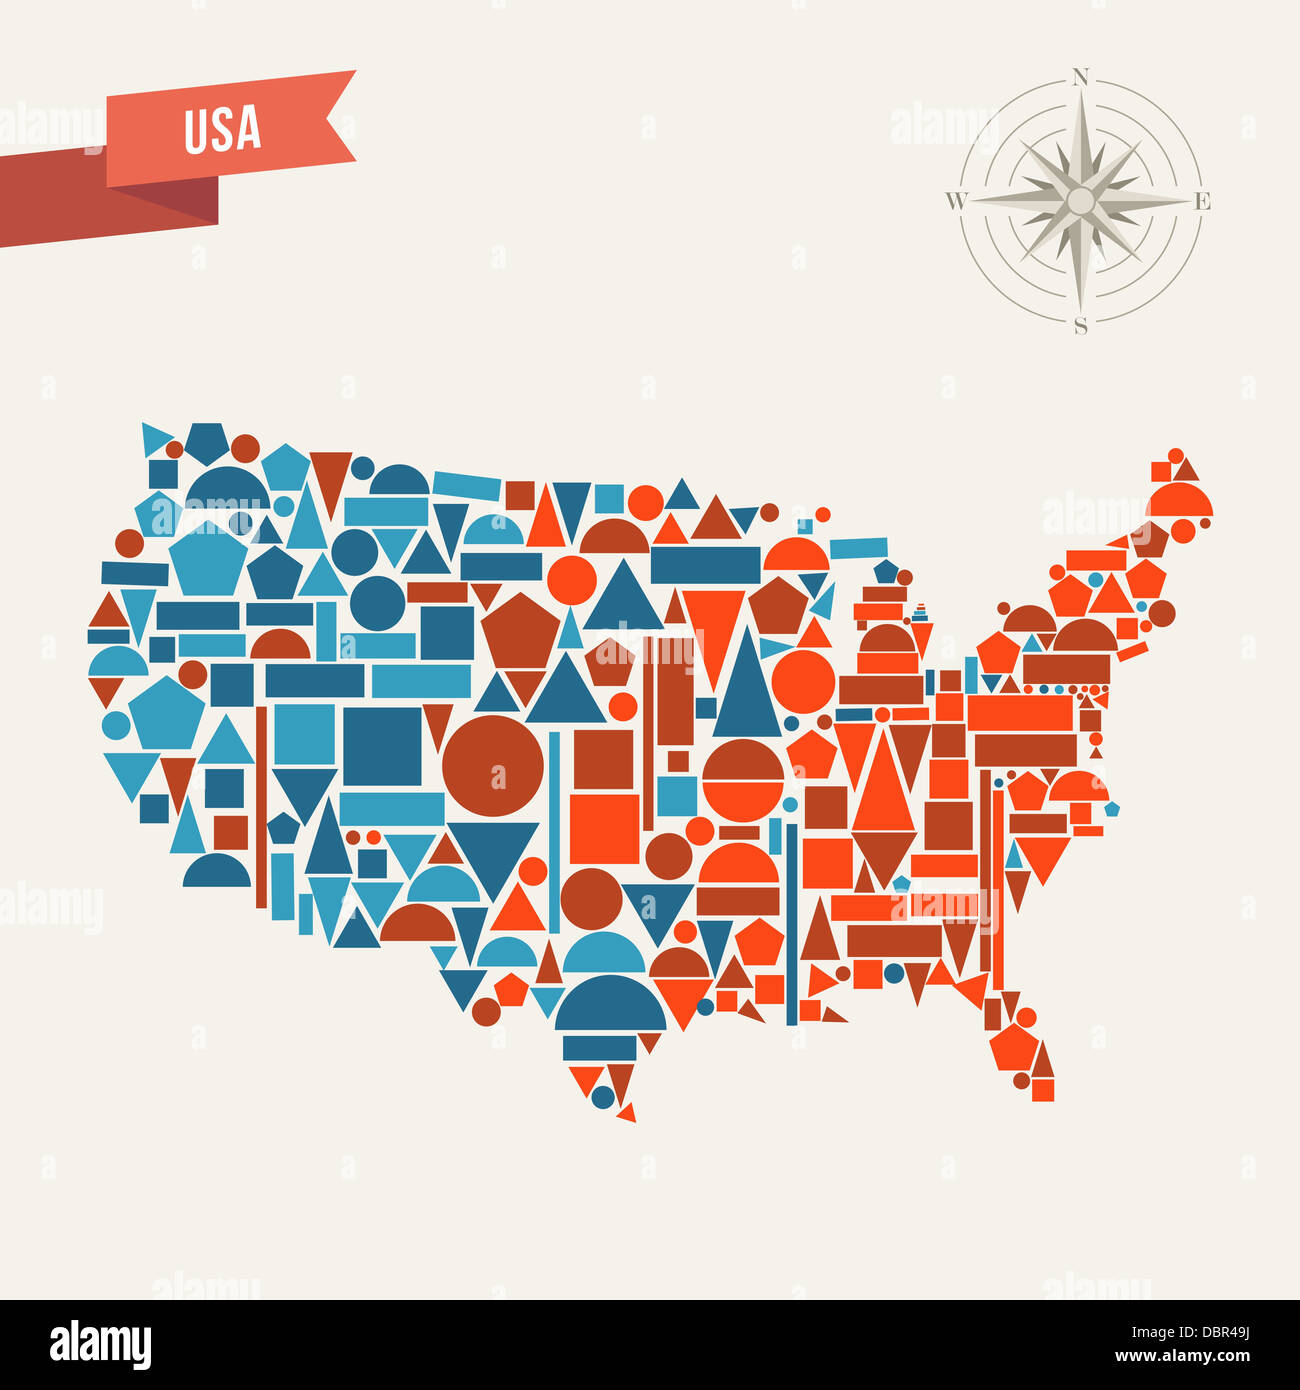 Vector States Map.United States Map Geometric Elements Illustration This Vector Stock